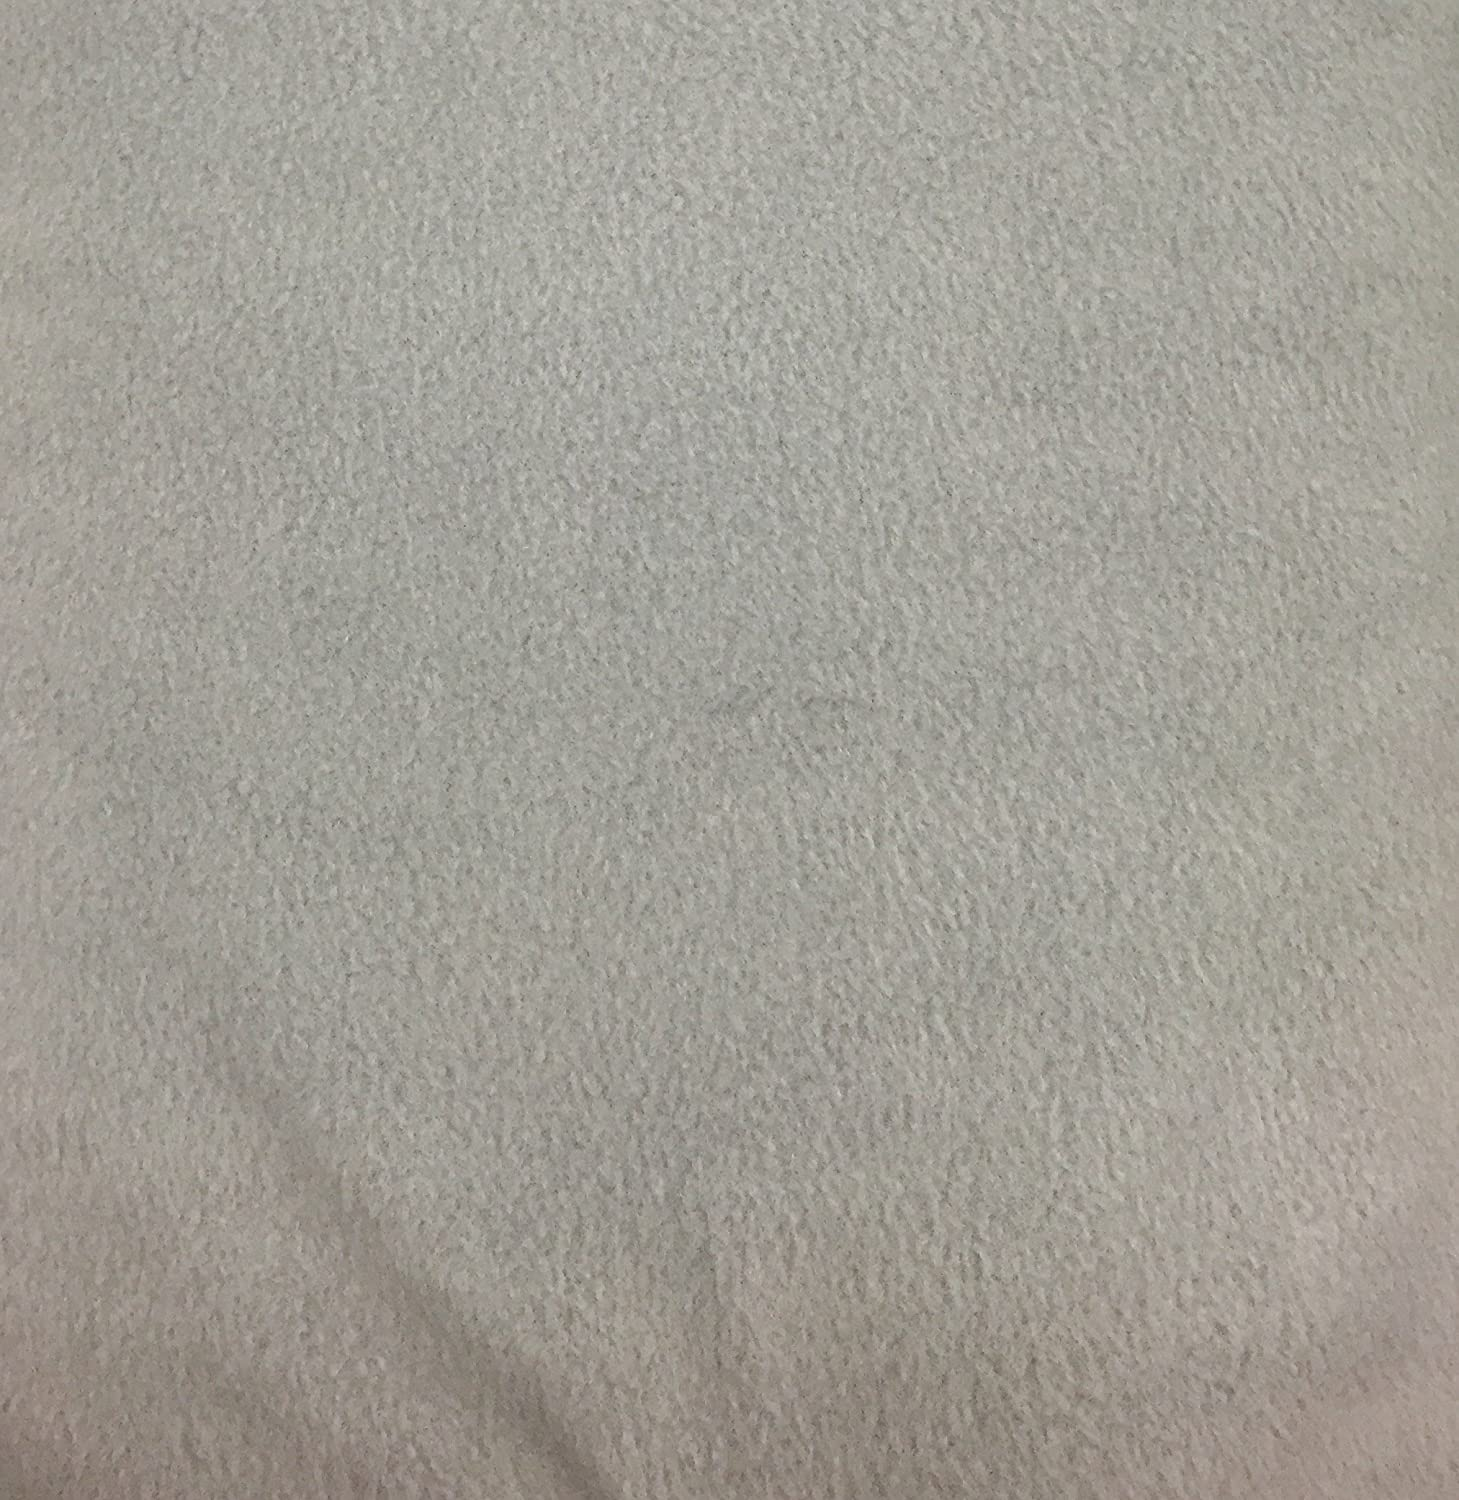 4 Yard Bolt Anti Pill Fleece Fabric Gray OFFicial site Medium Polyester Large discharge sale